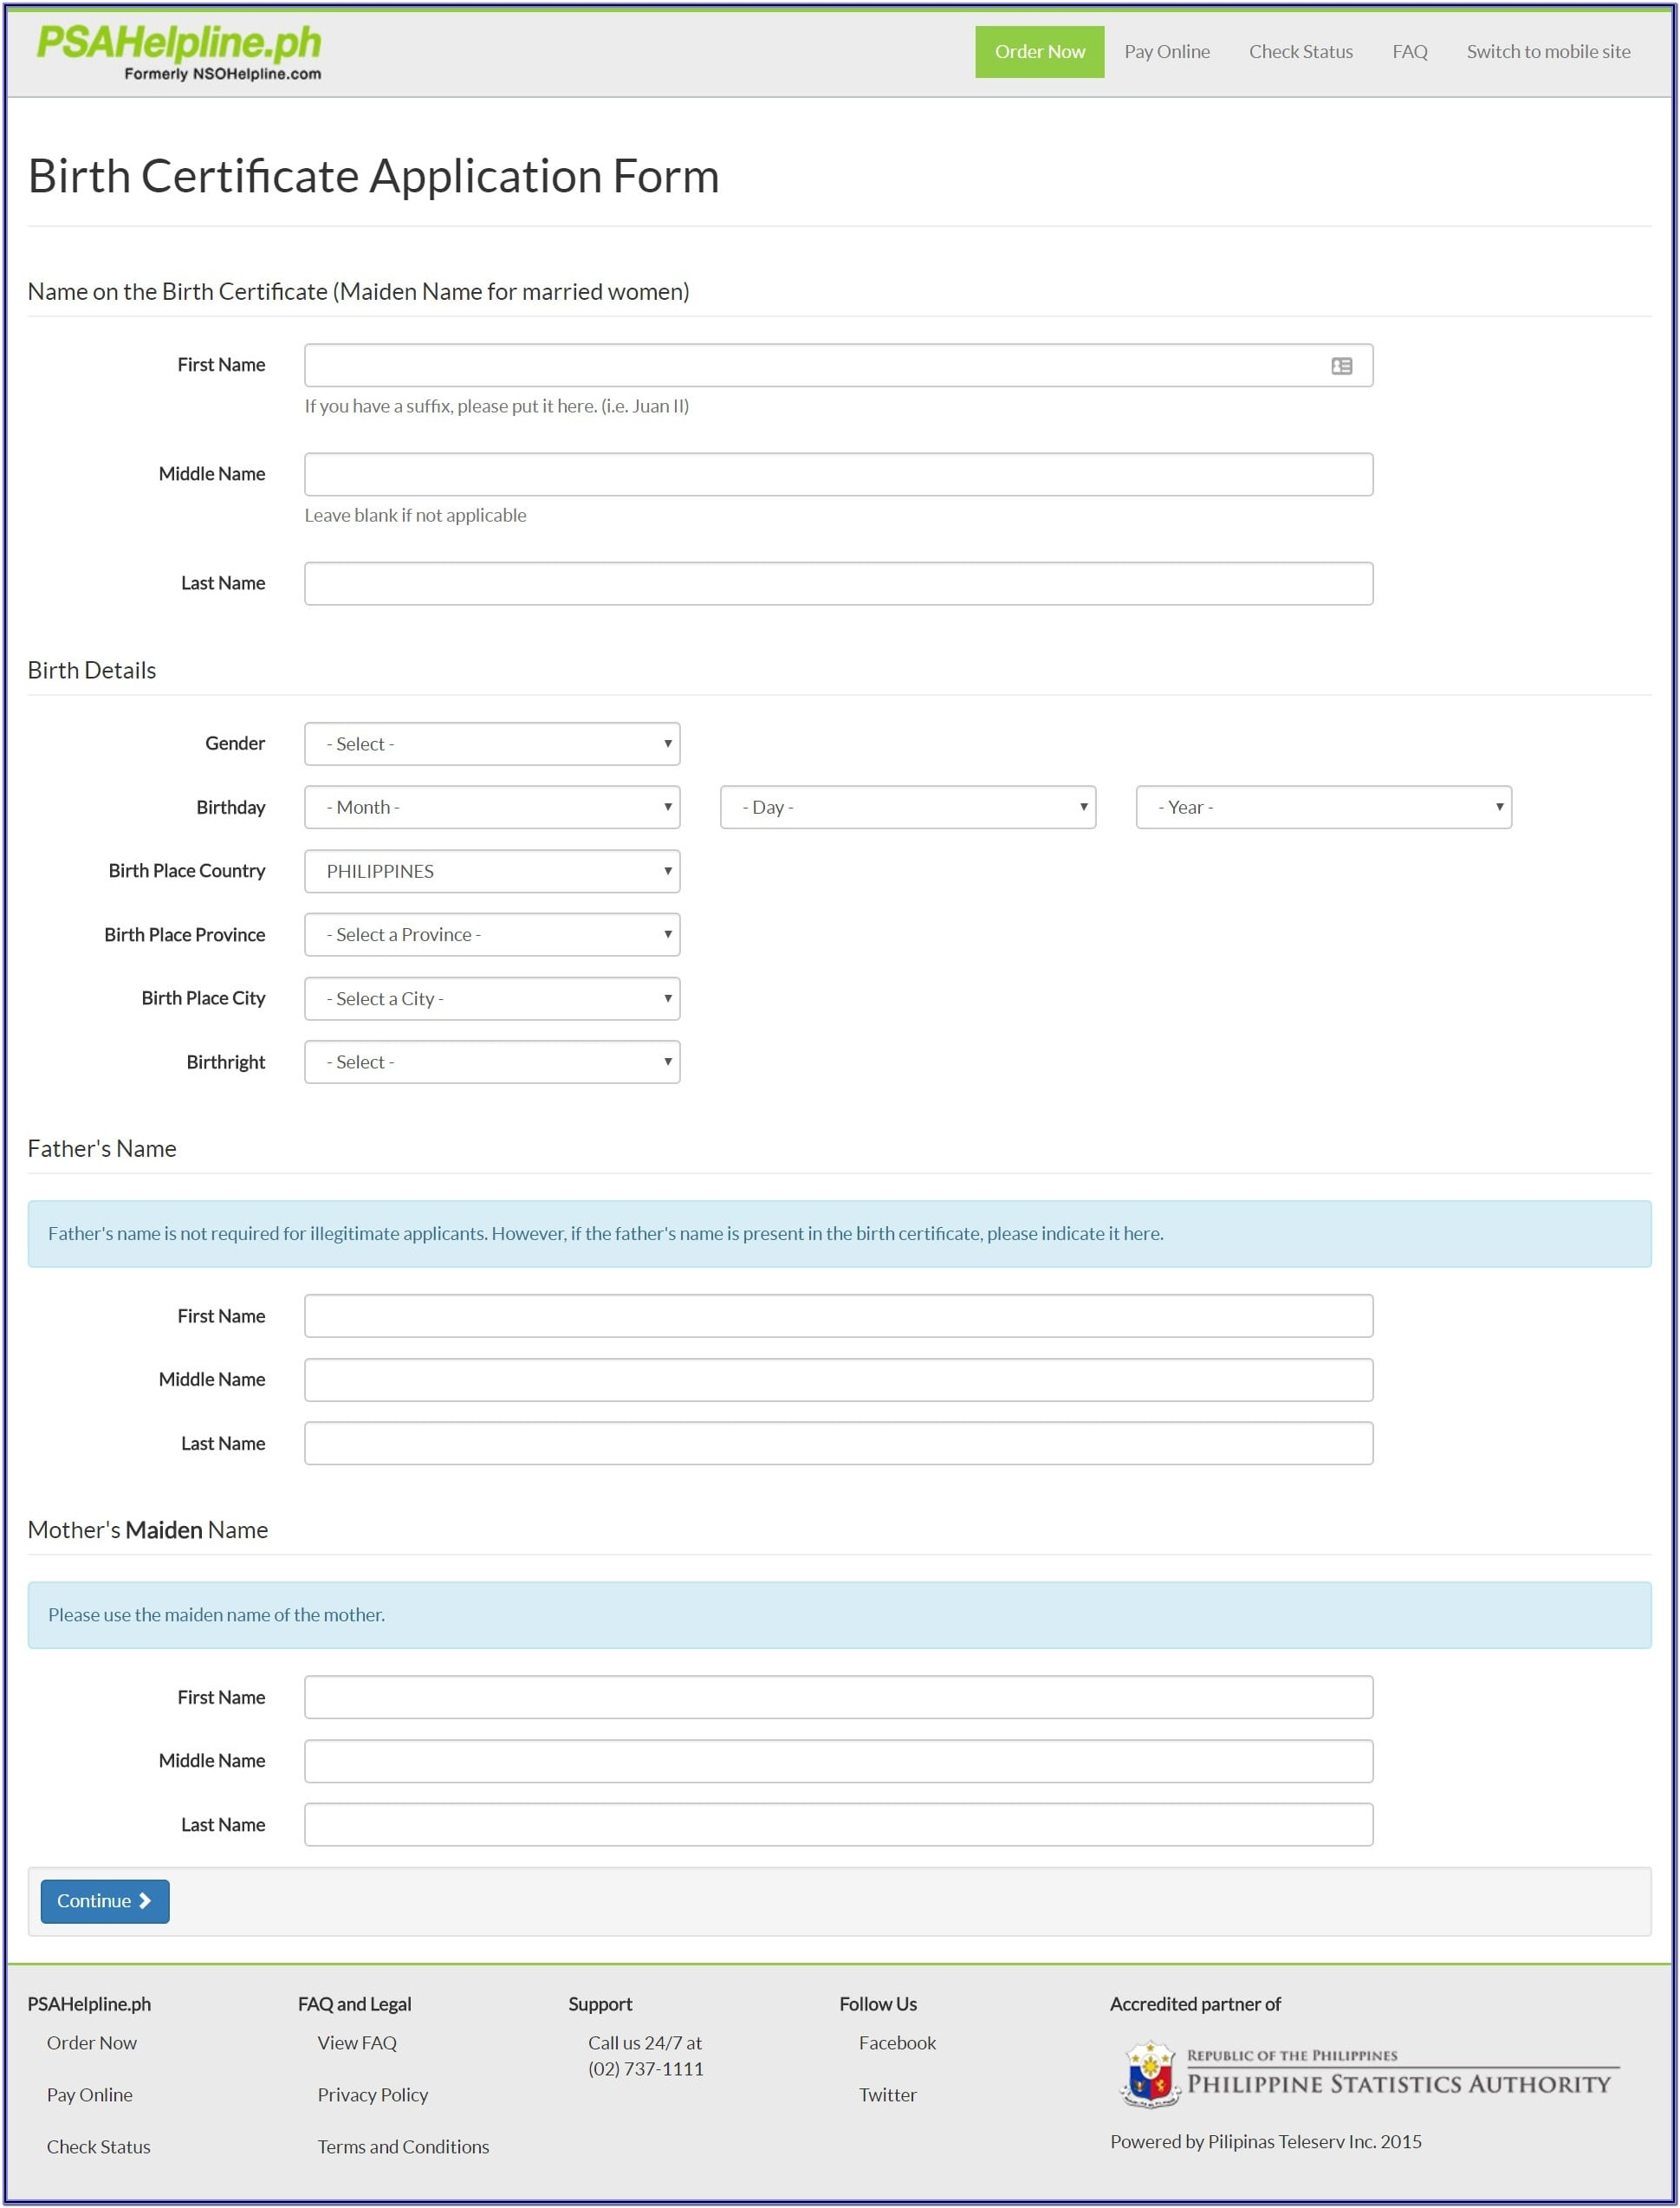 Nso Online Application Form For Birth Certificate